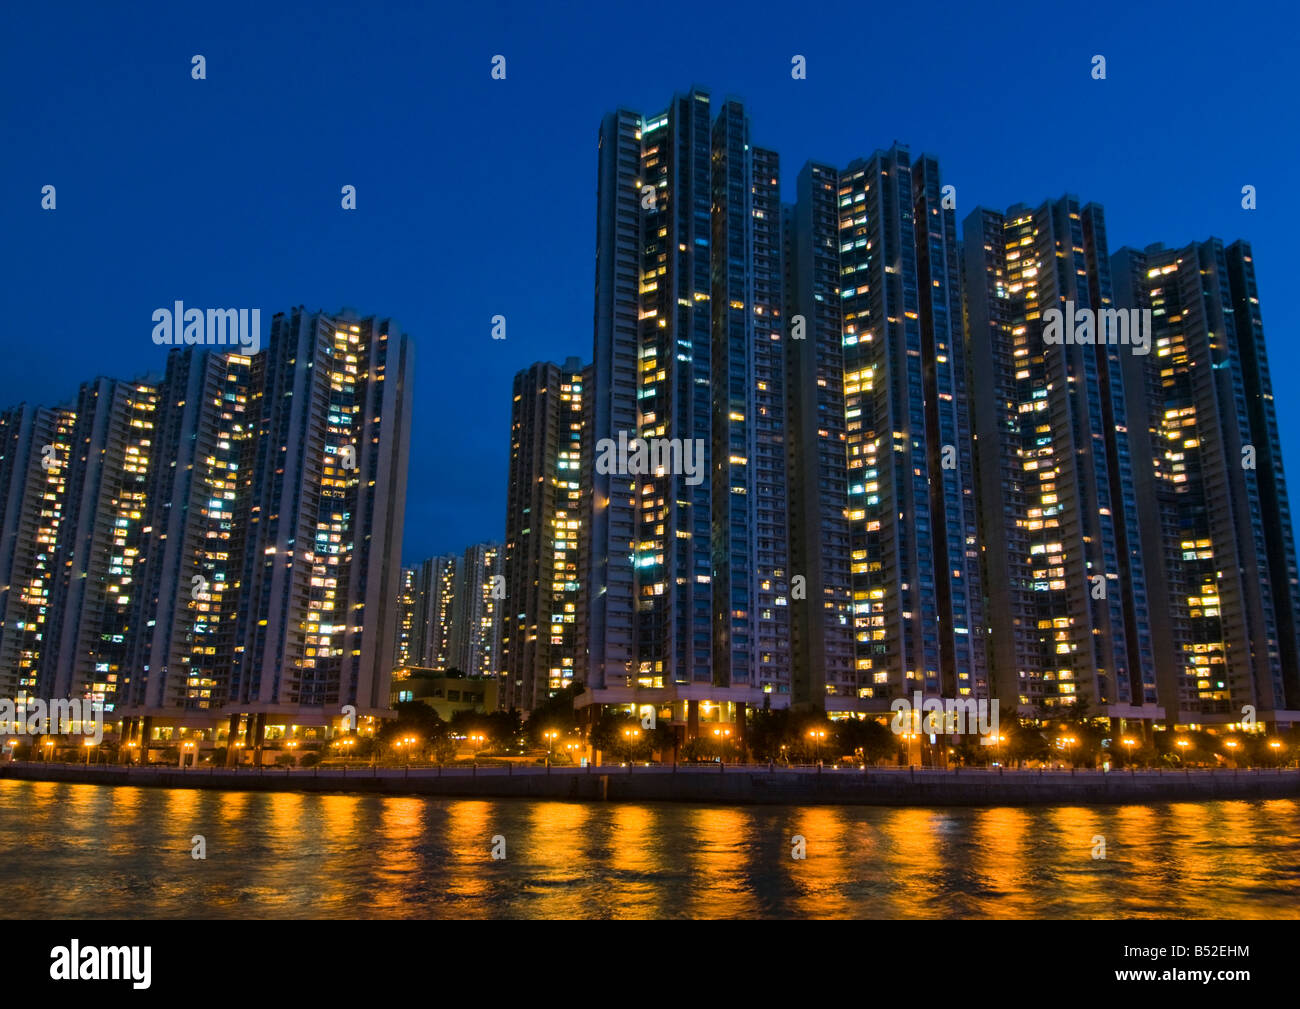 'Residential highrise complex on the shores of Aberdeen harbour Hong Kong' - Stock Image